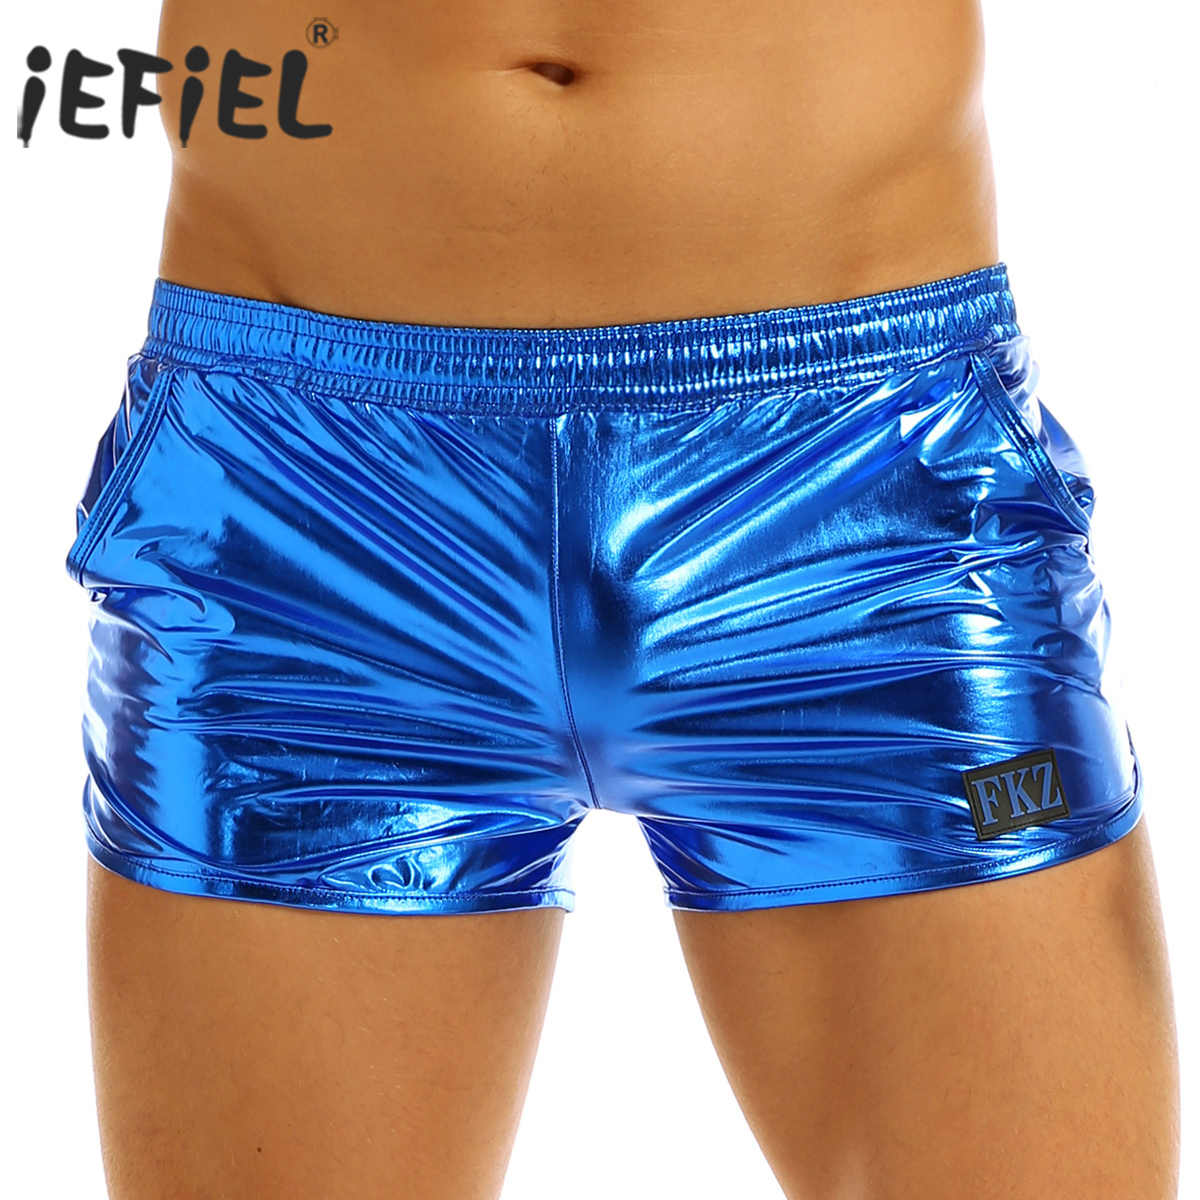 iEFiEL Mens Shiny Metallic Night Club Party Jockstraps Shorts Elastic Waistban Boxer Shorts Performance Clubwear Costume Trunks